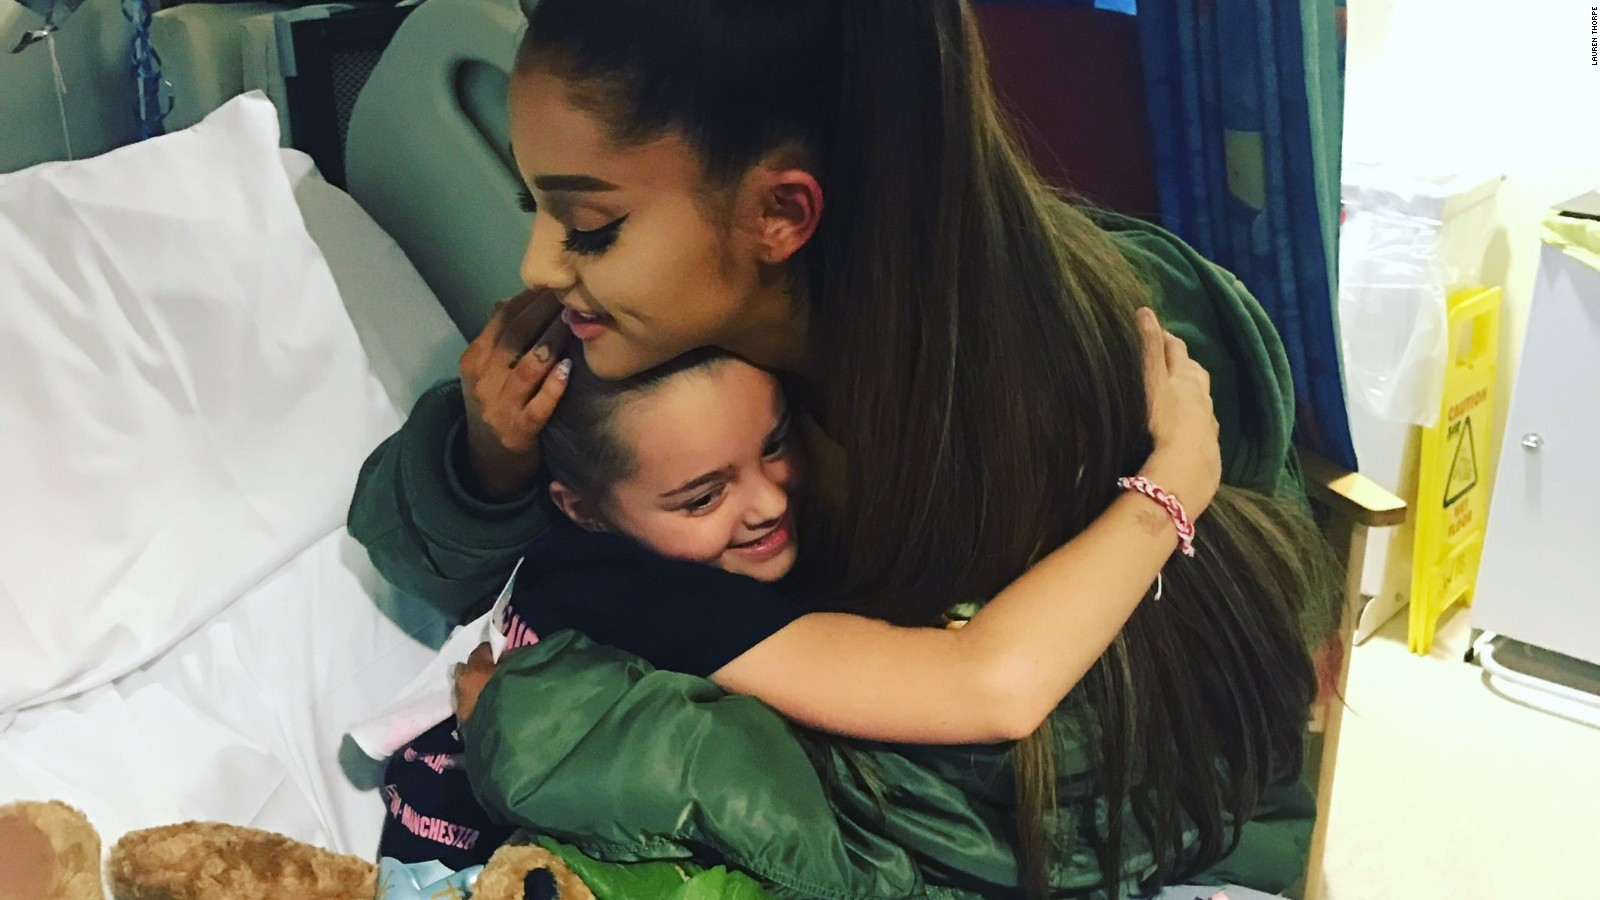 Ariana Grande Visits Injured Fans At Manchester Hospital Cnn